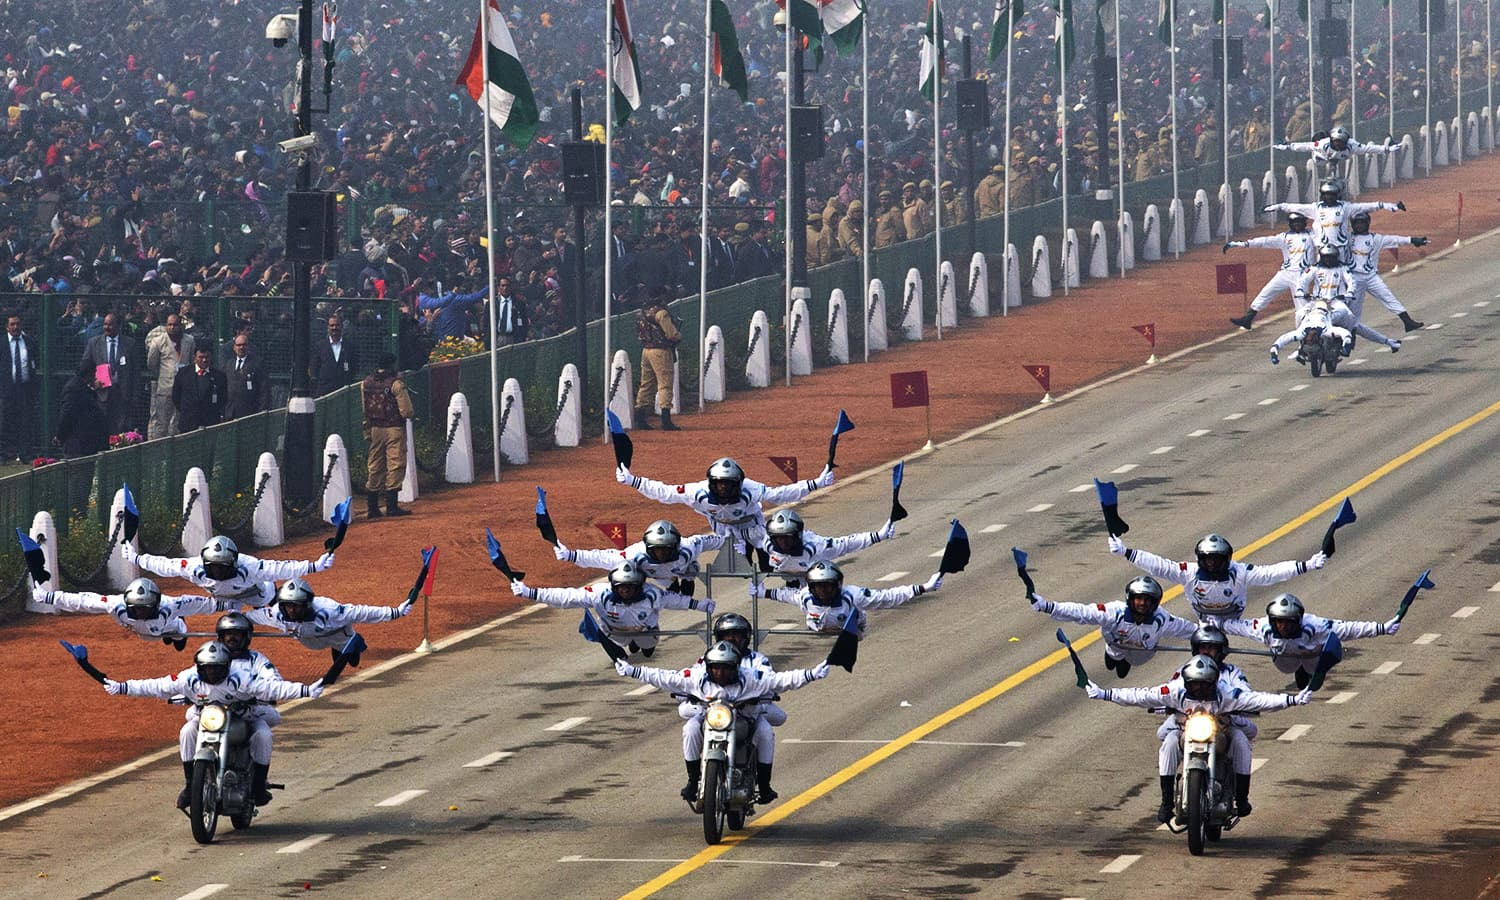 Motorcycle display team of Indian army's 'Corps of Signals',  popularly known as 'Dare Devils', make formations on motorcycles as they roll down Rajpath during the parade. ─ AP